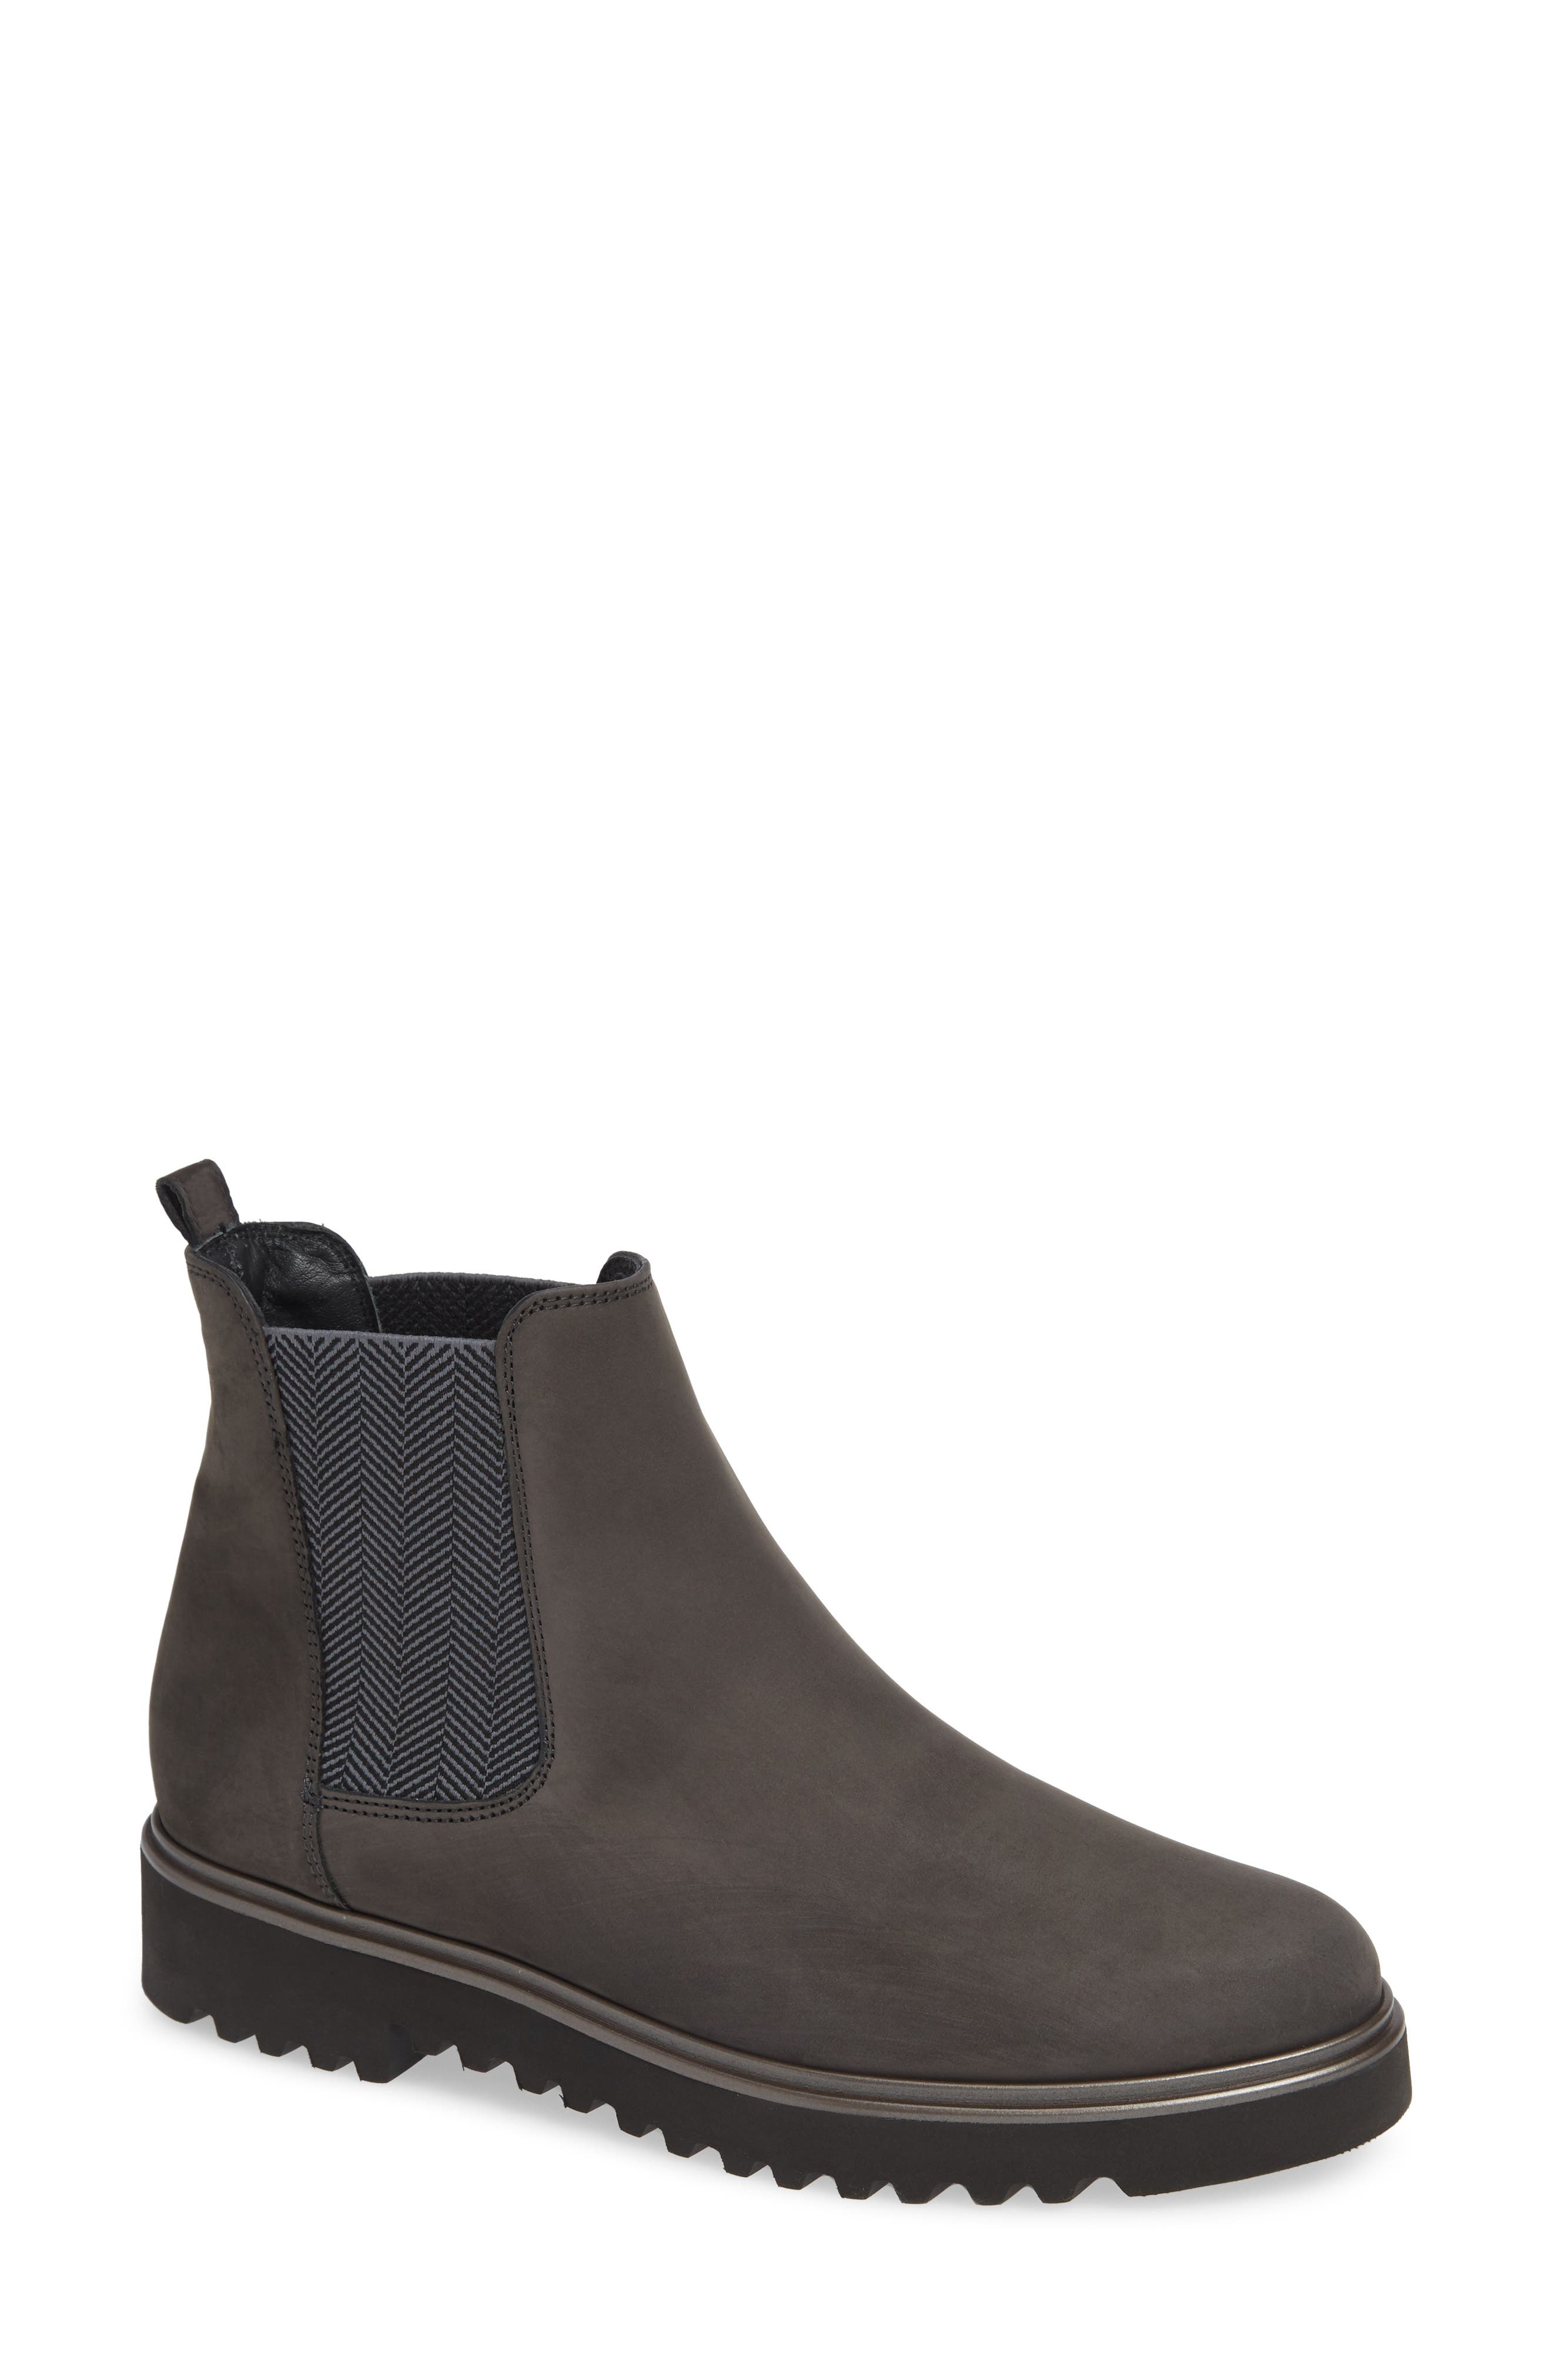 Paul Green Vienna Lugged Chelsea Bootie - Grey